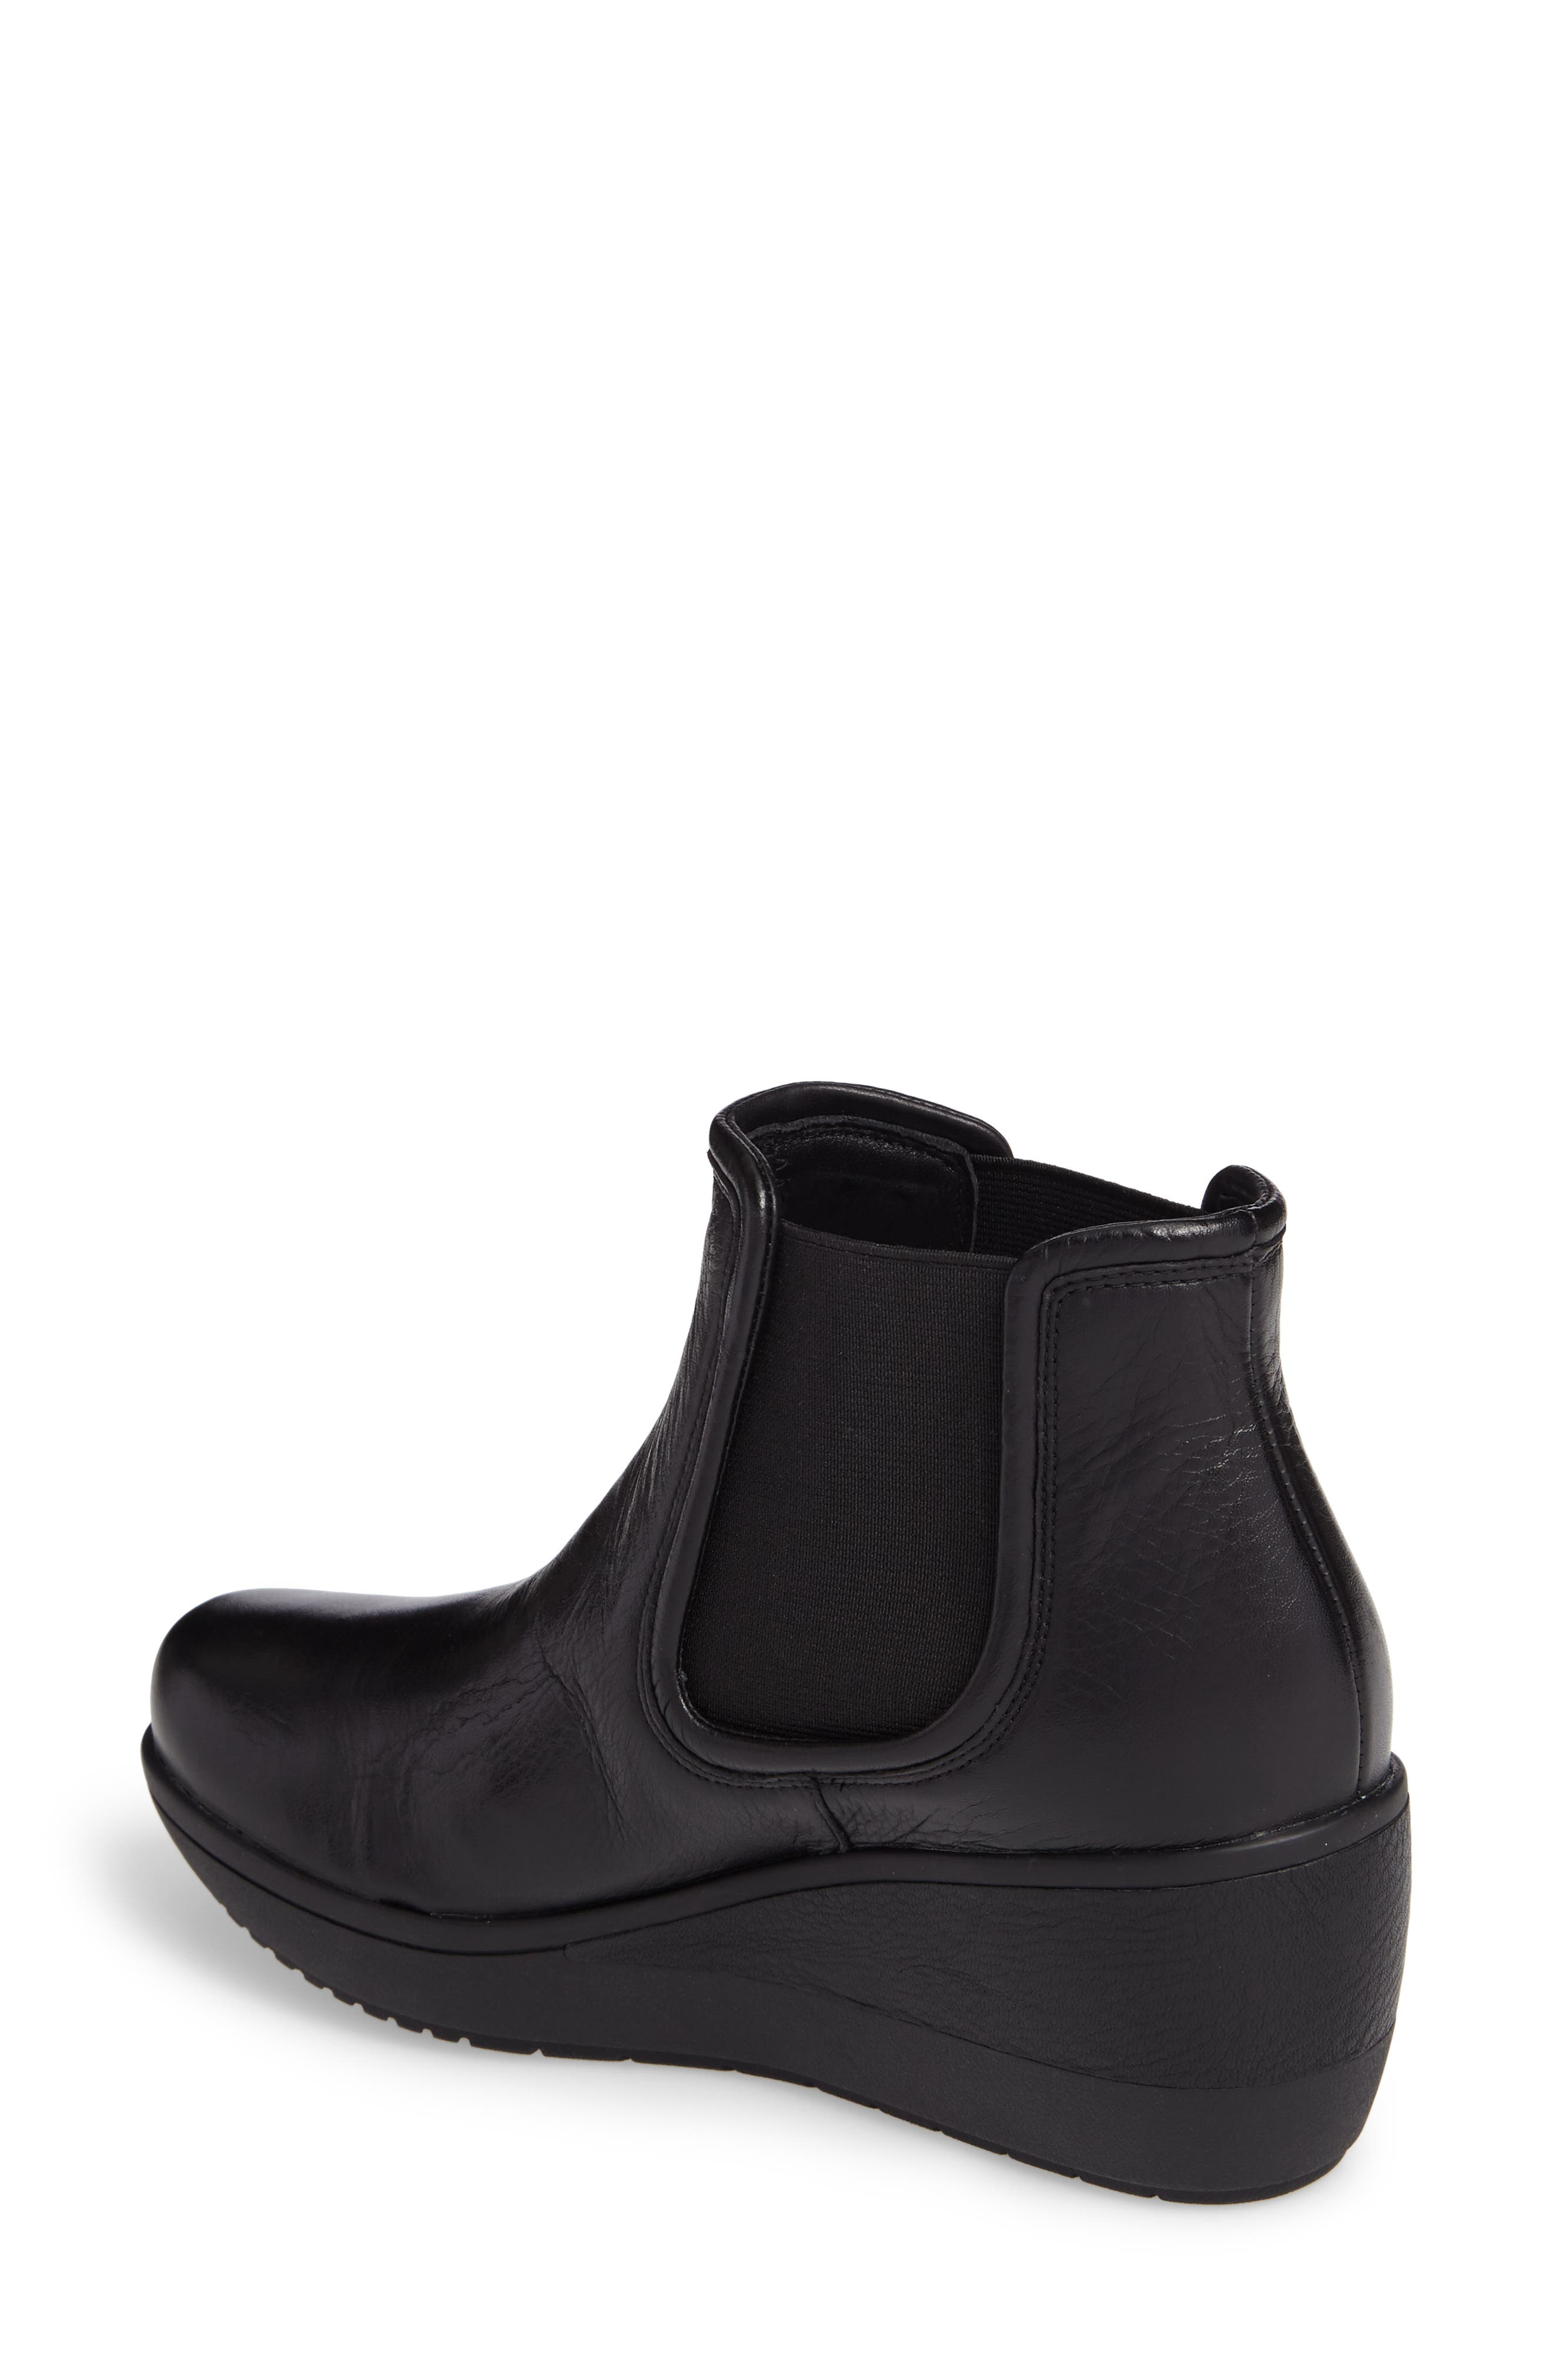 Wynnmere Mara Boot,                             Alternate thumbnail 2, color,                             Black Leather